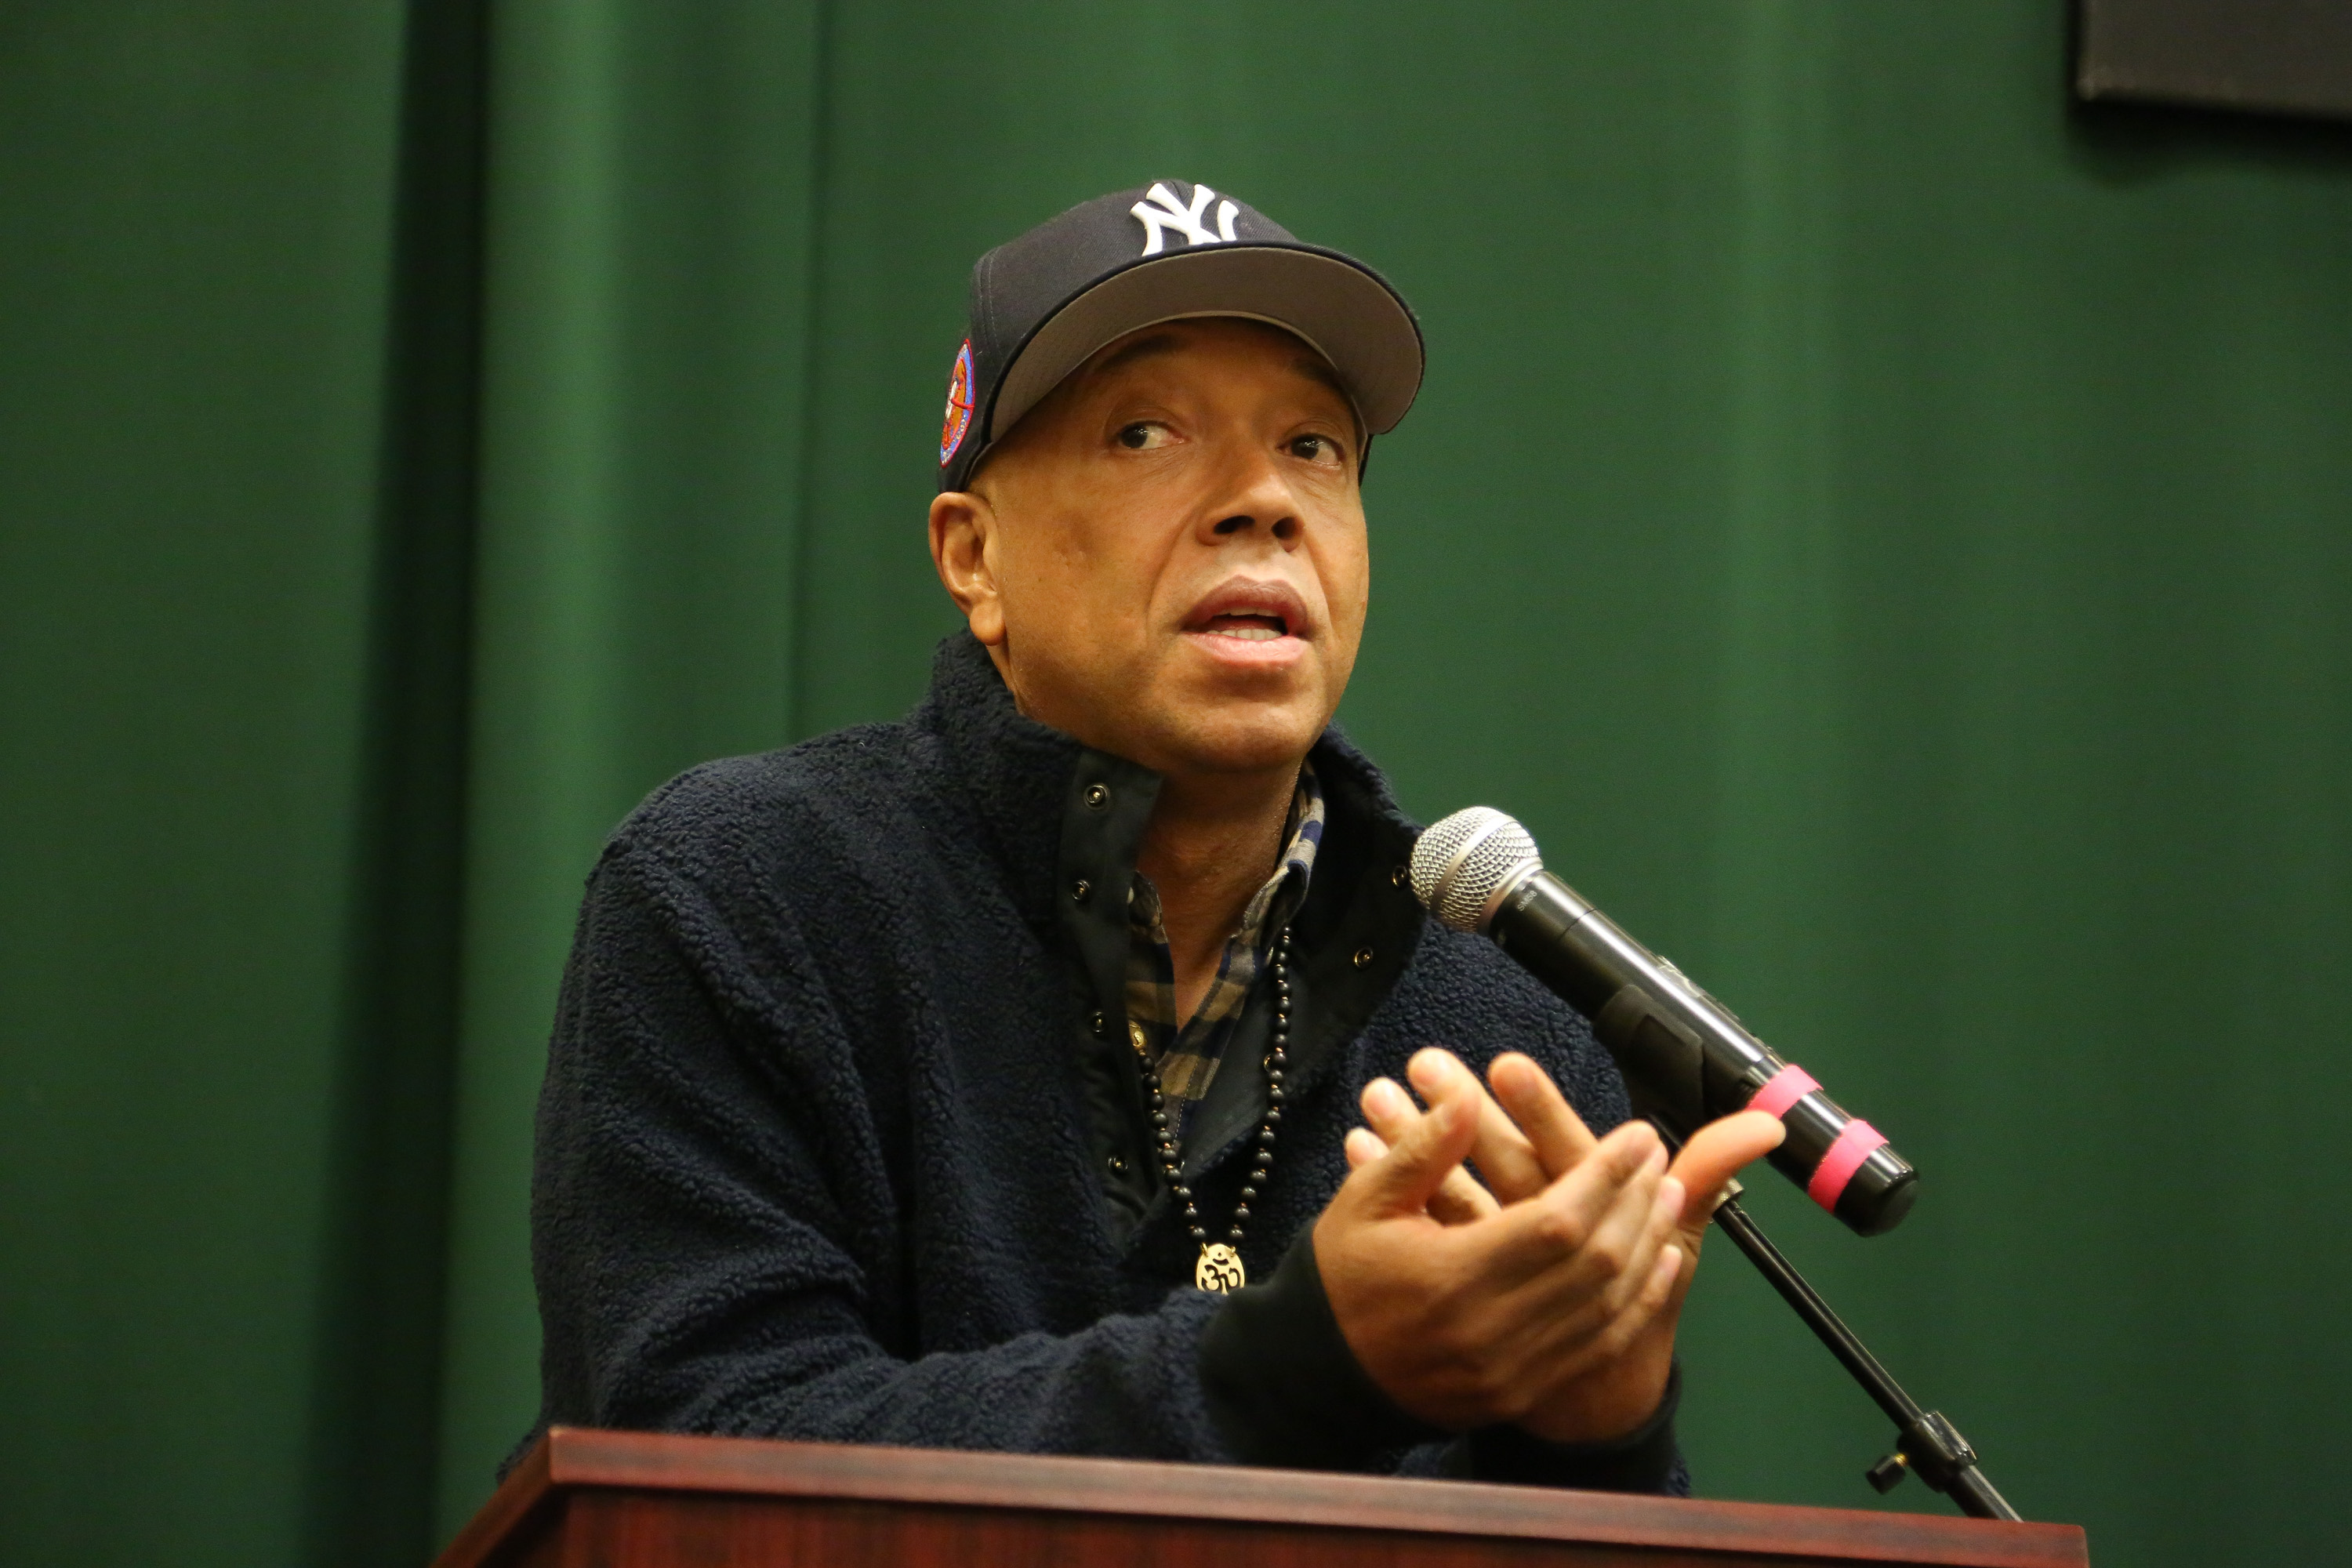 Russell Simmons promotes his new book,  The Happy Vegan: A Guide To Living A Long, Healthy, and Successful Life,   Jan. 12, 2016 in New York City